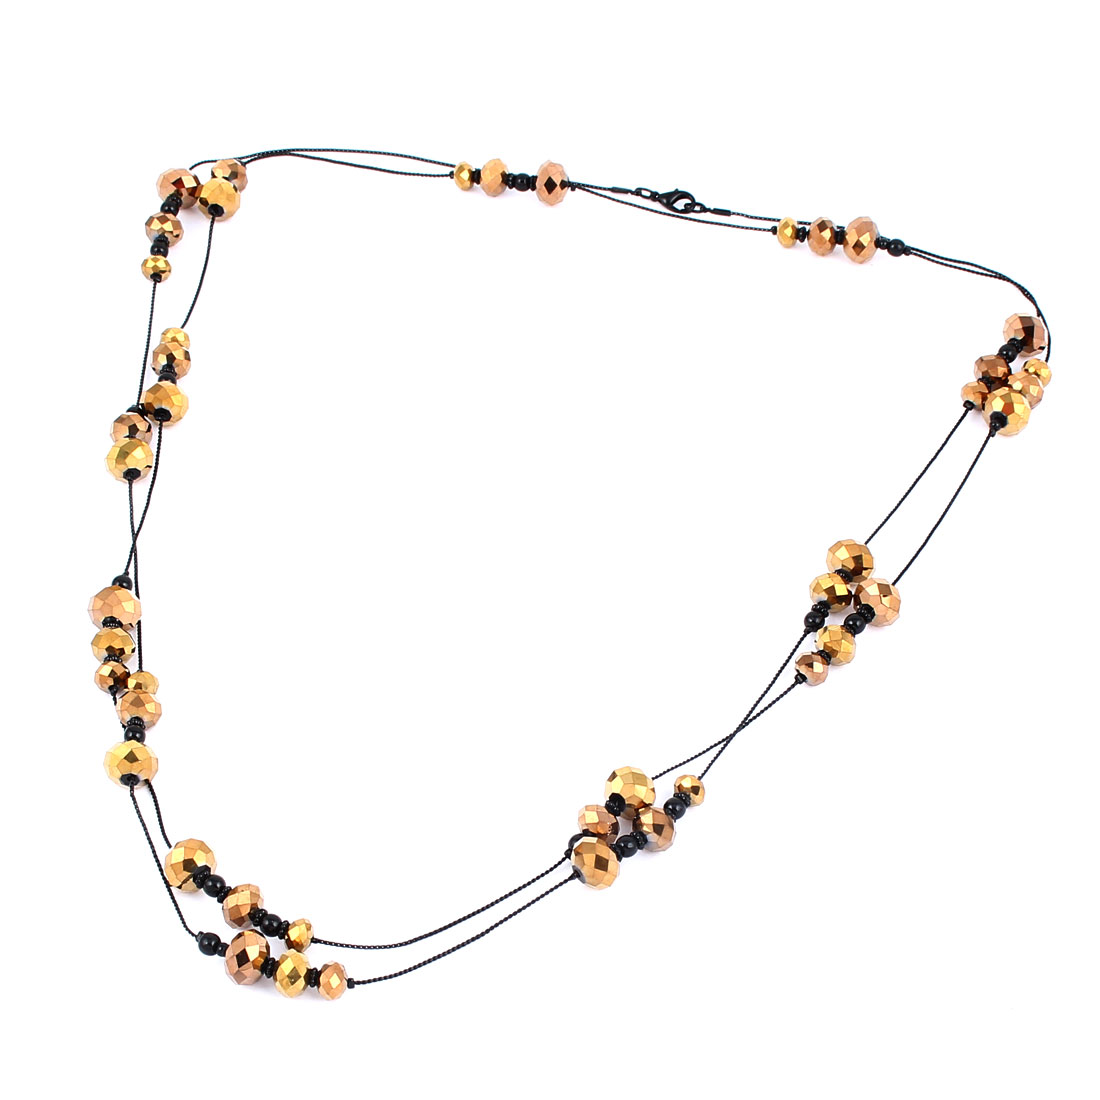 Gold Tone Black Plastic Beads Decor Metal Lobster Buckle Strip Link Slim Chain Necklace Neckwear Collar for Ladies Women